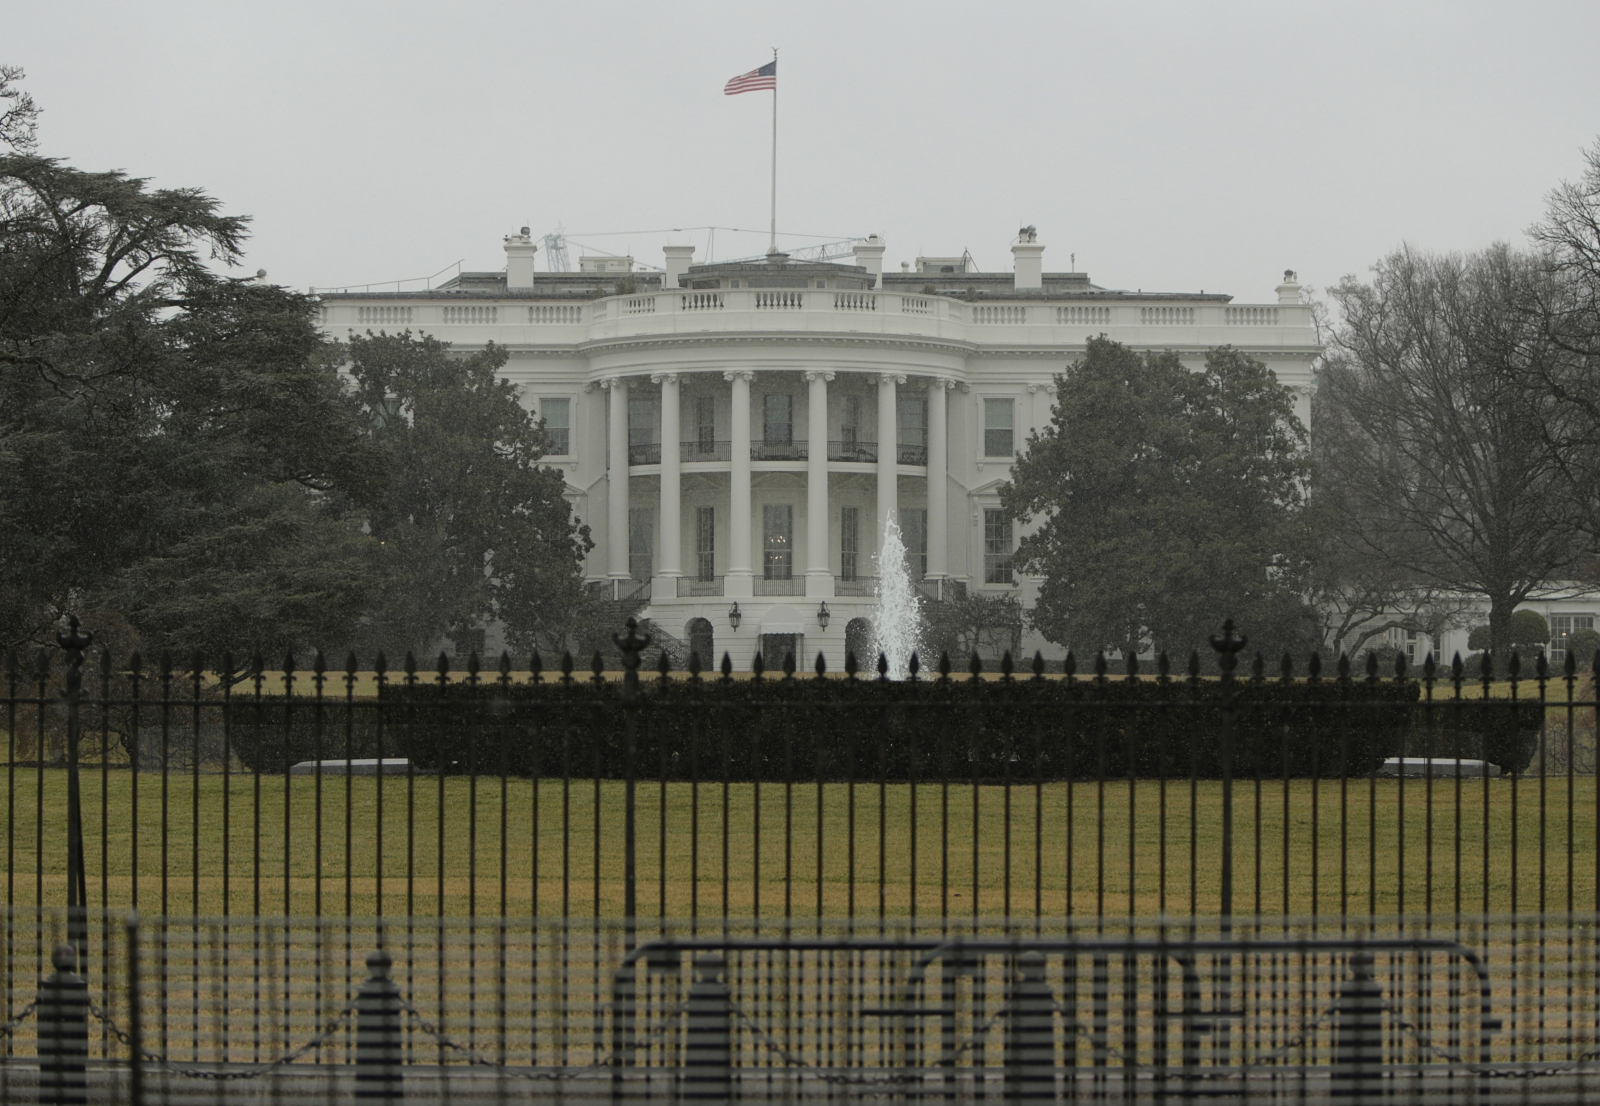 The south lawn of the White House where the helicopter drone crashed. The Secret Service has announced that it will conduct drone exercises in Washington DC